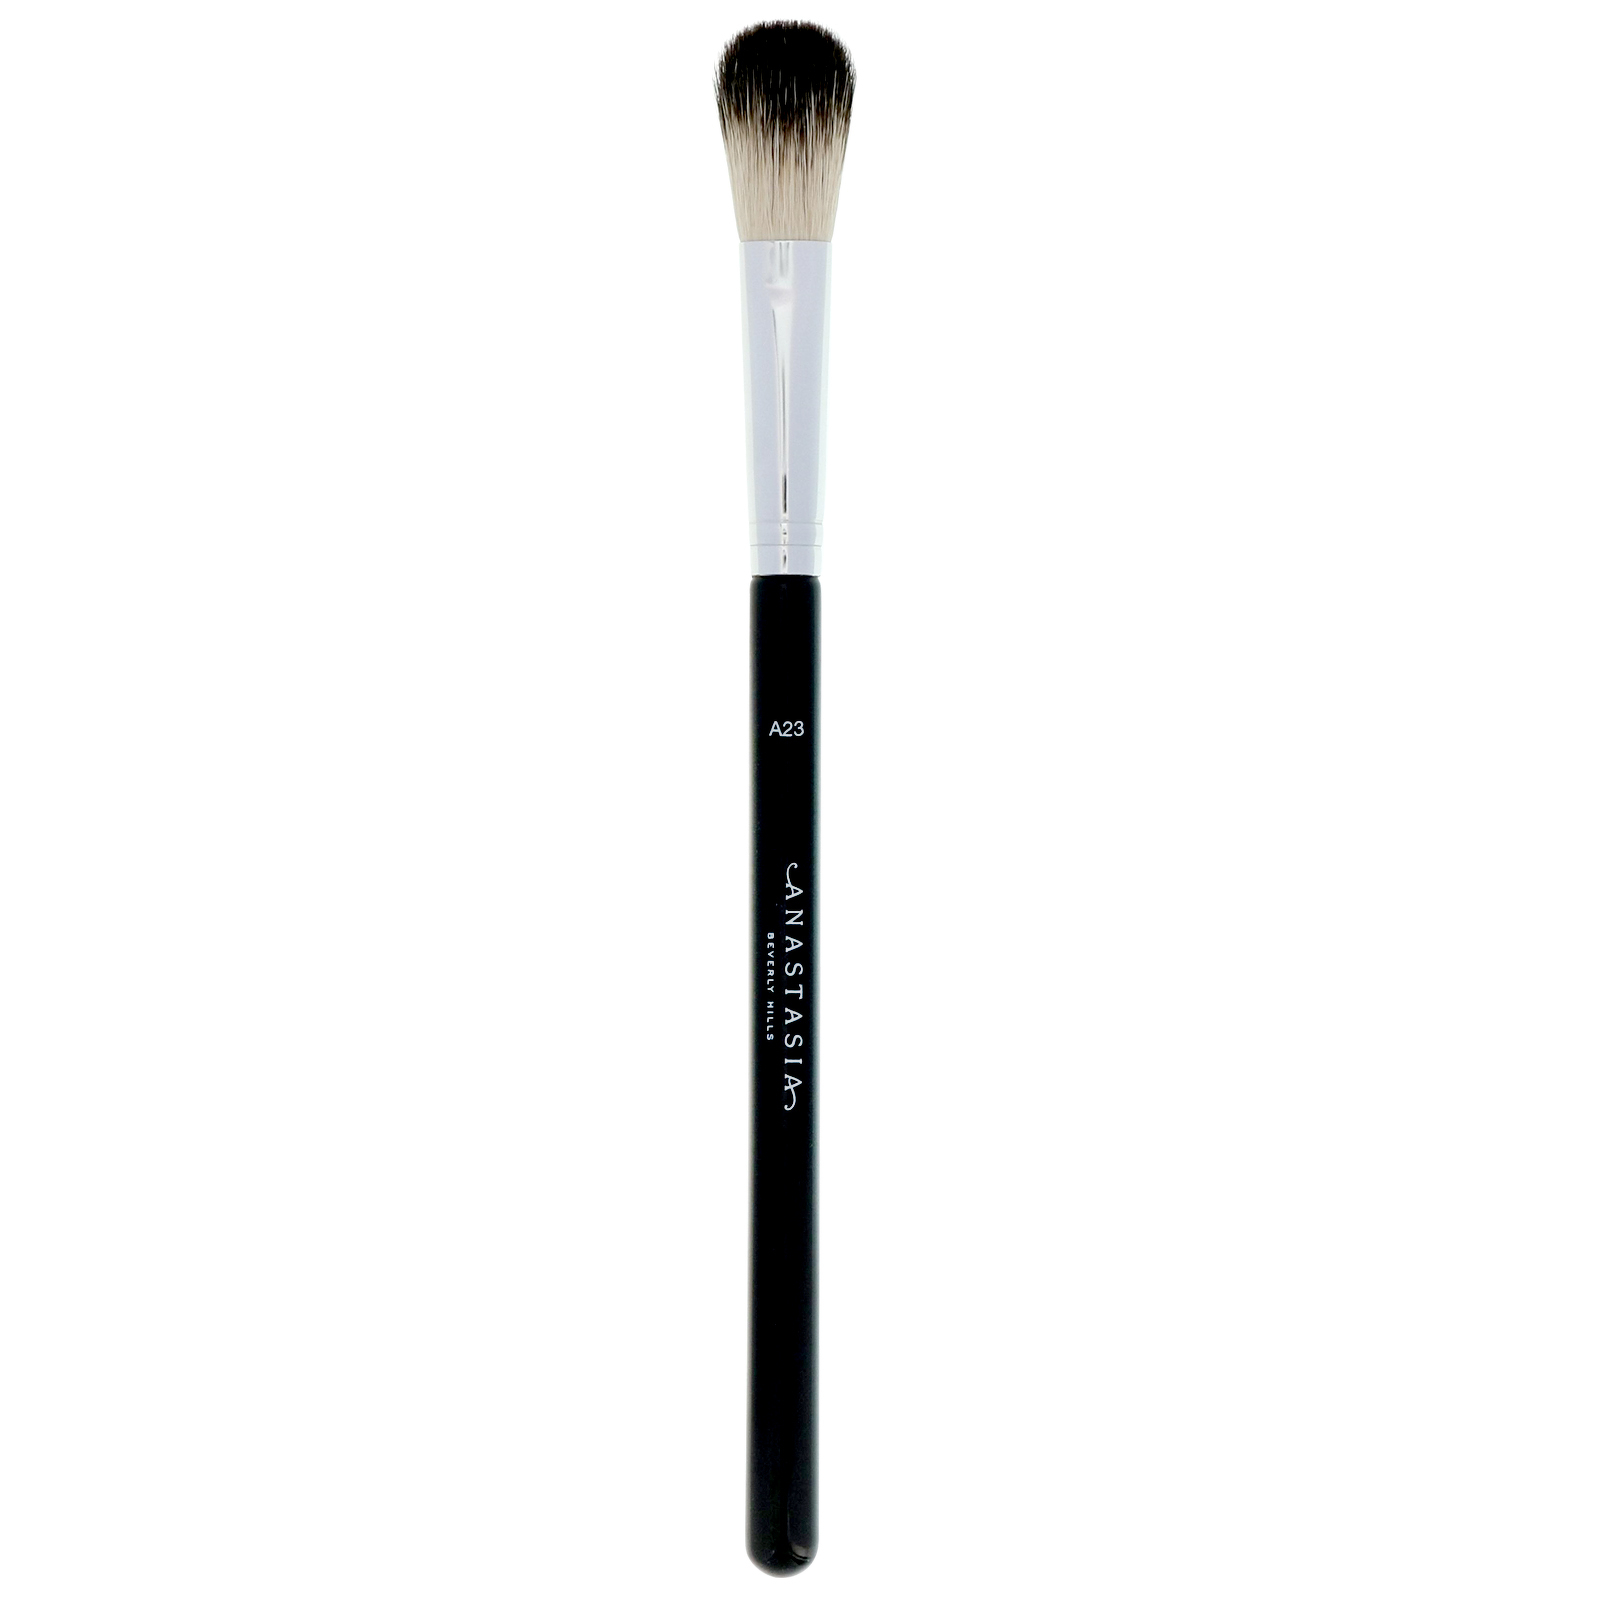 ANASTASIA BEVERLY HILLS Makeup Brushes A23 Large Tapered Blending Brush